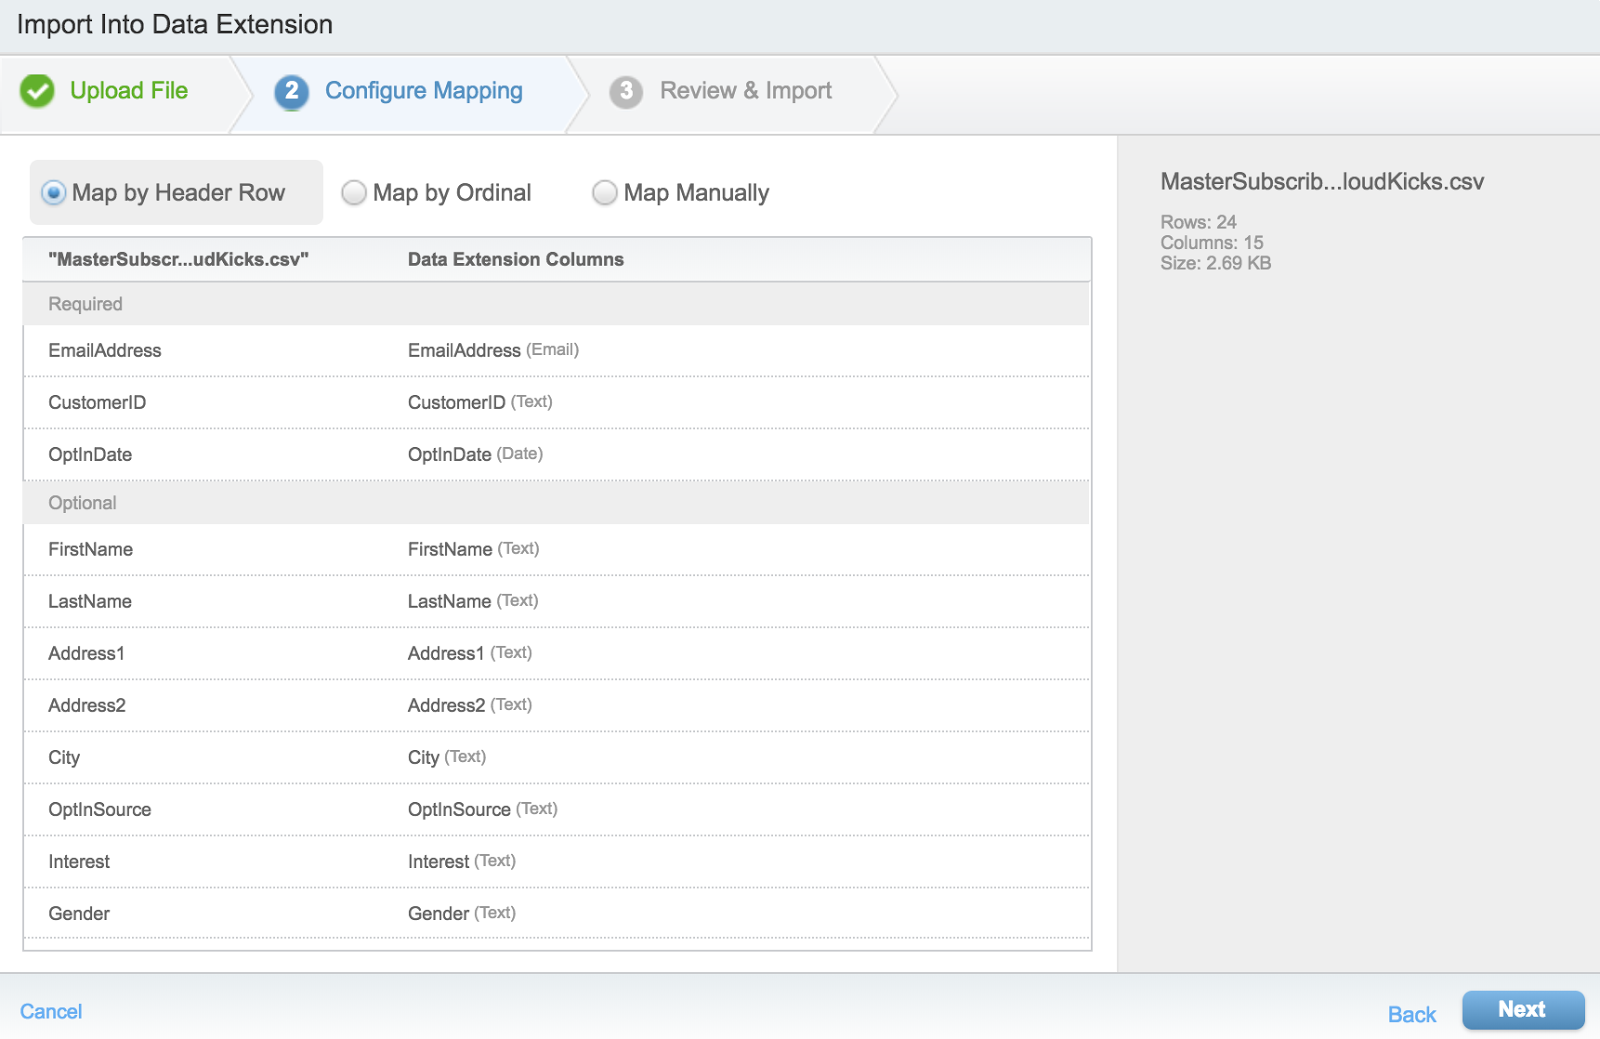 Import Wizard Step 2: Configure Mapping